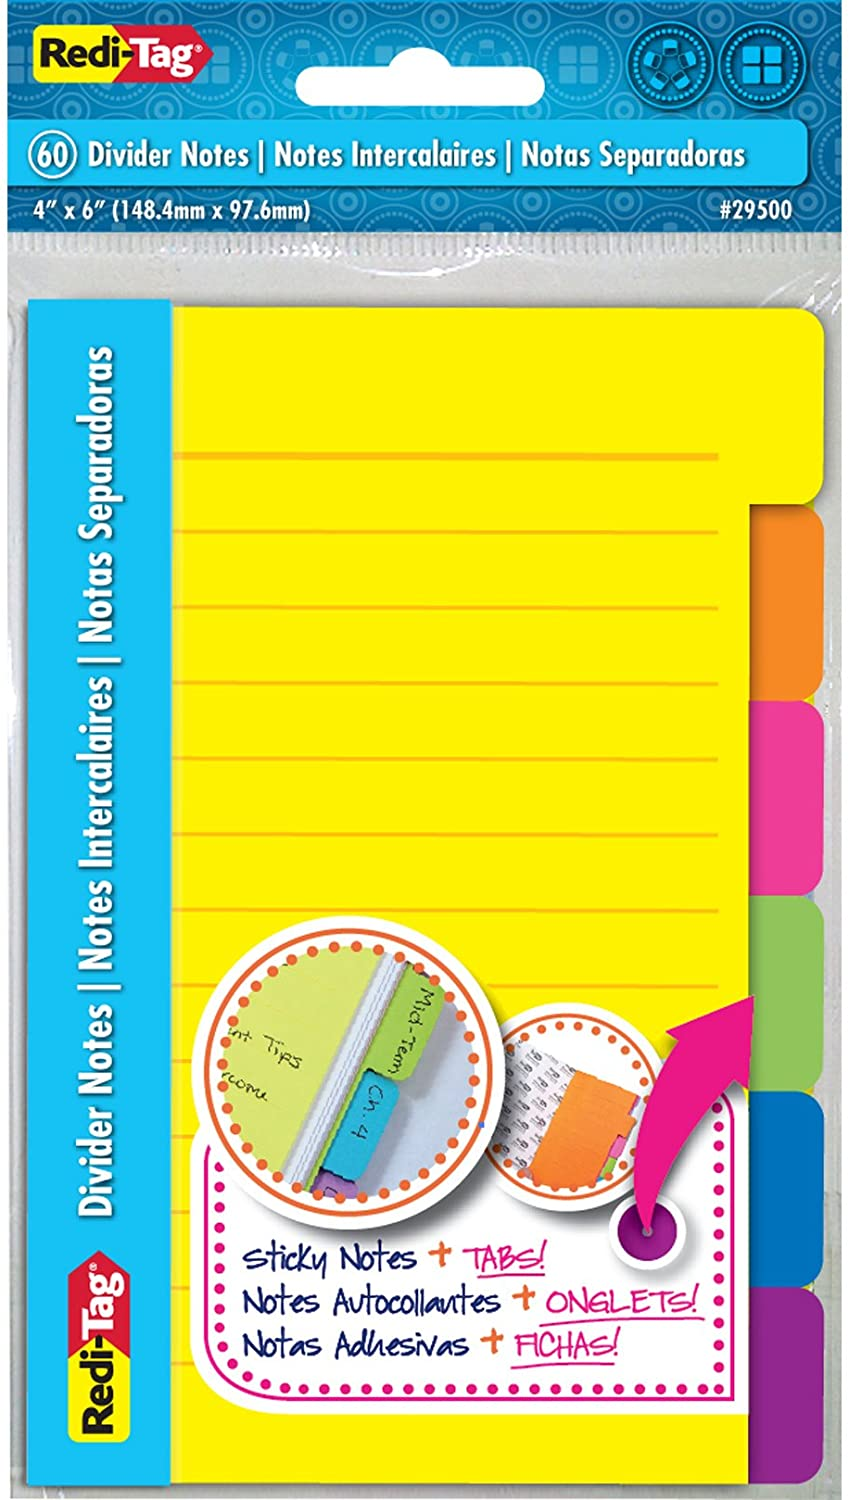 10,2/x 15,2/cm colori fluo assortiti 2 Pack redi-tag Divider Sticky notes 60/Ruled notes